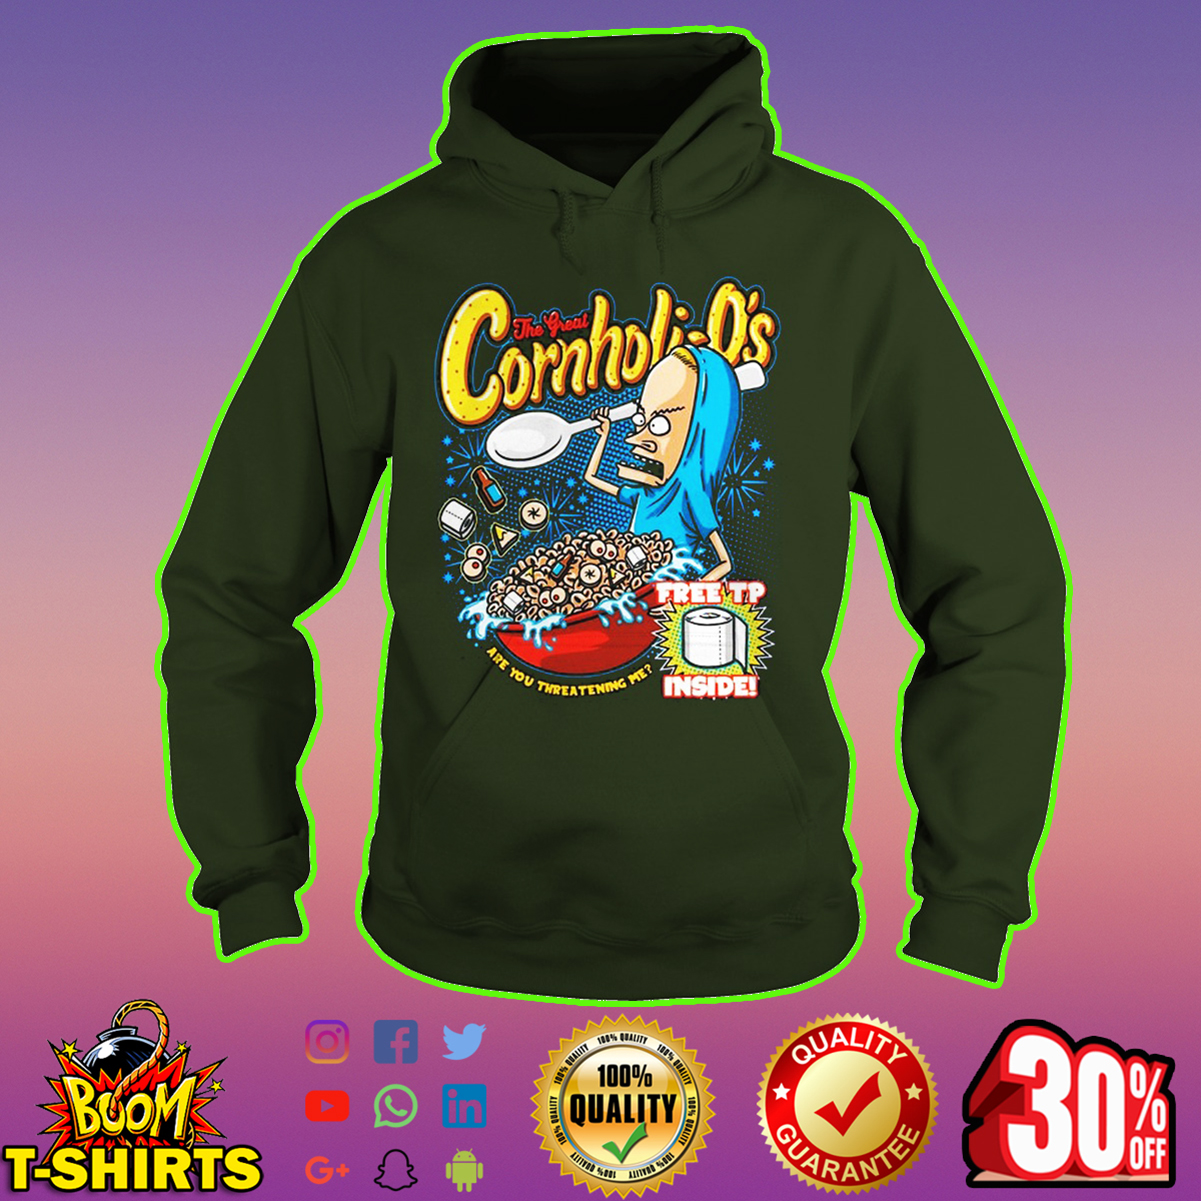 Beavis the great Cornholio free tp inside hoodie